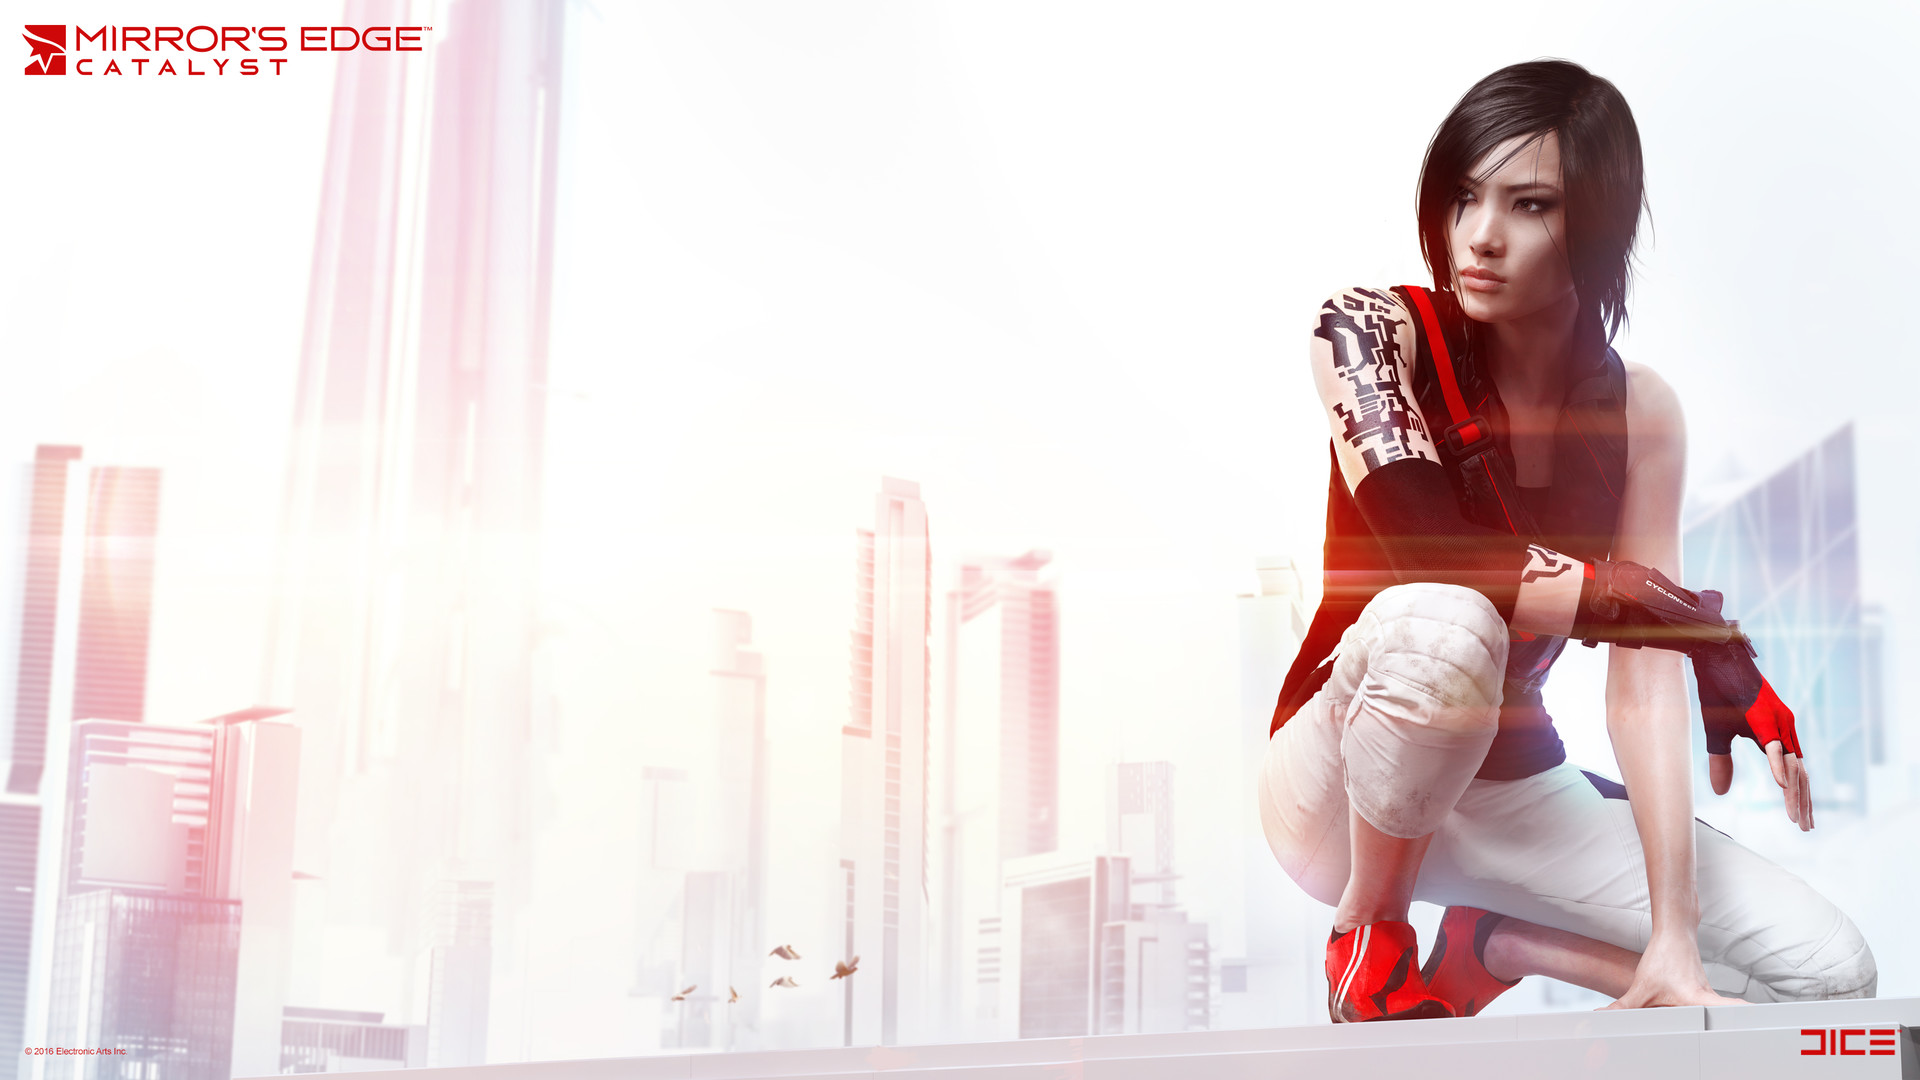 Per Haagensen - Mirror's Edge Catalyst